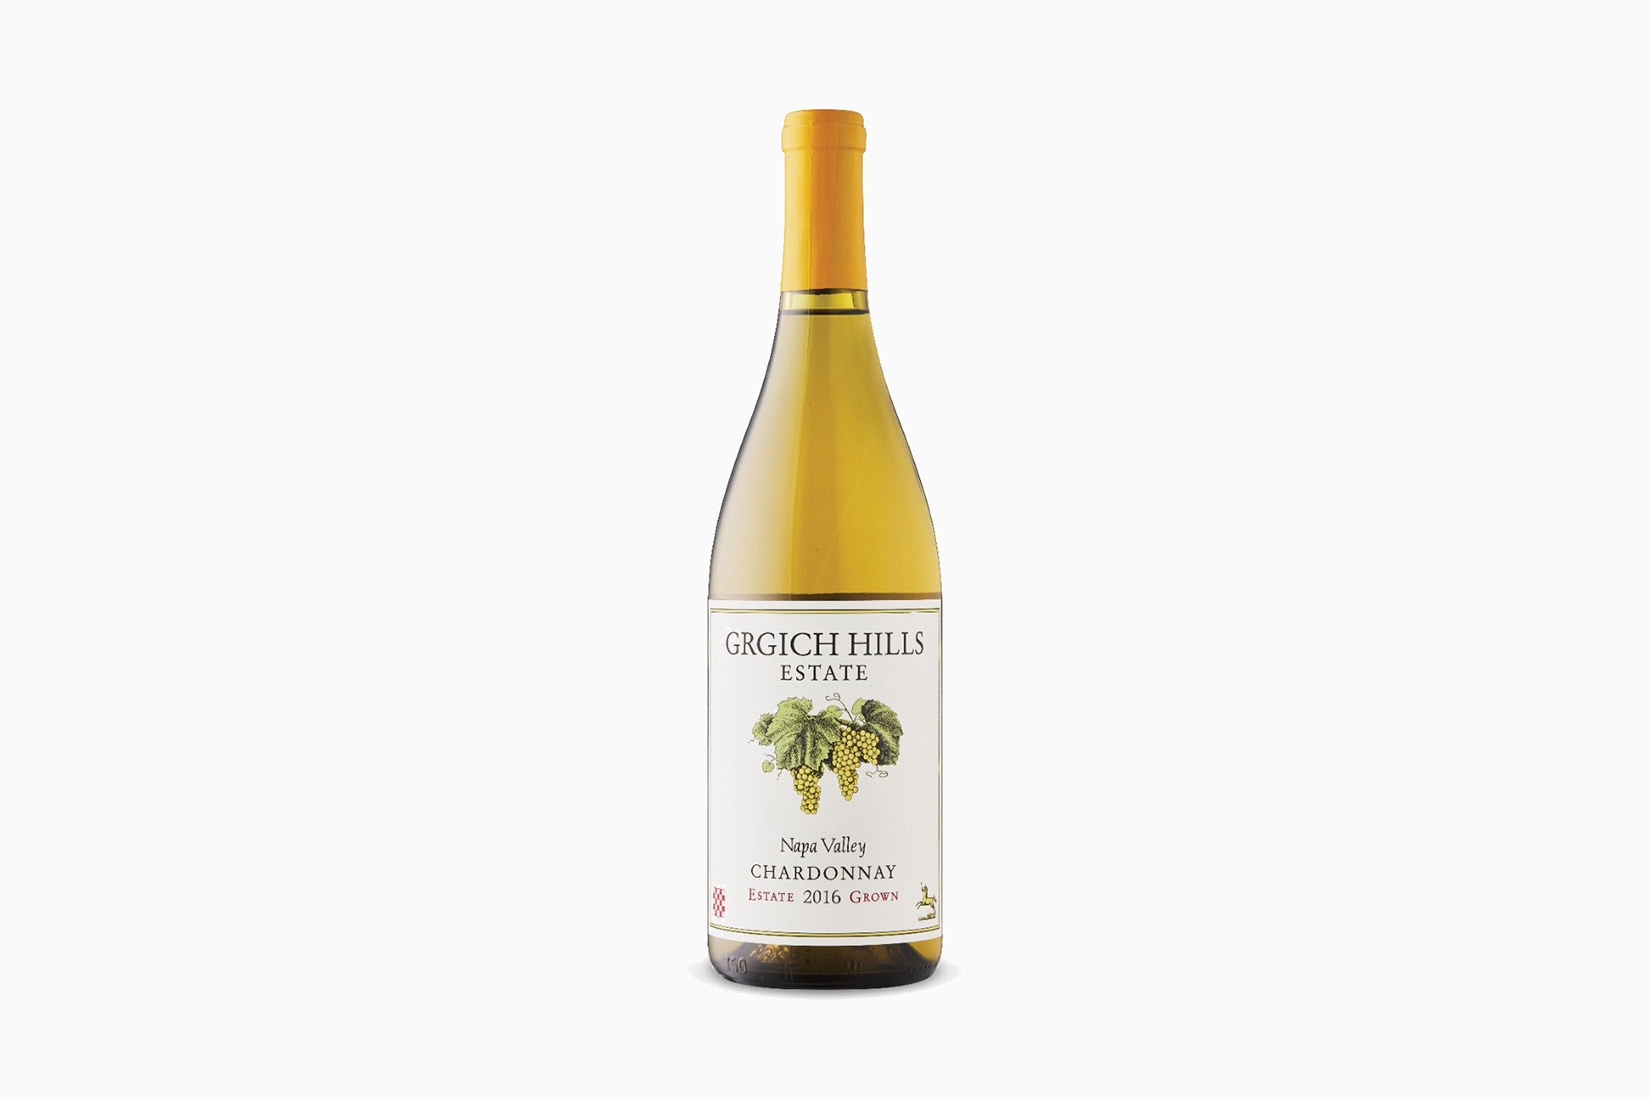 best wine grgich hills estate chardonnay - Luxe Digital